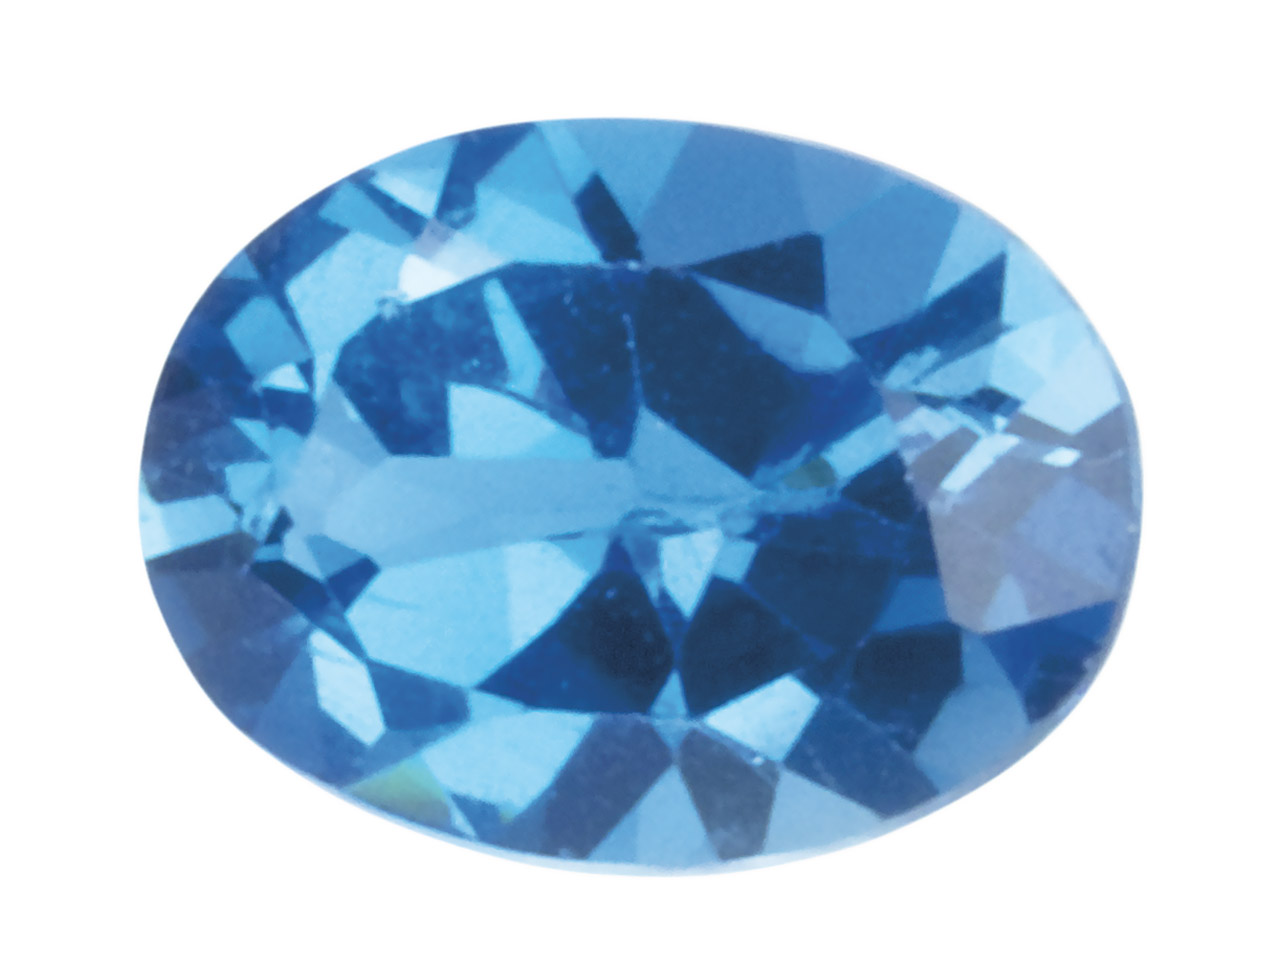 London Blue Topaz, Oval, 7x5mm,    Treated